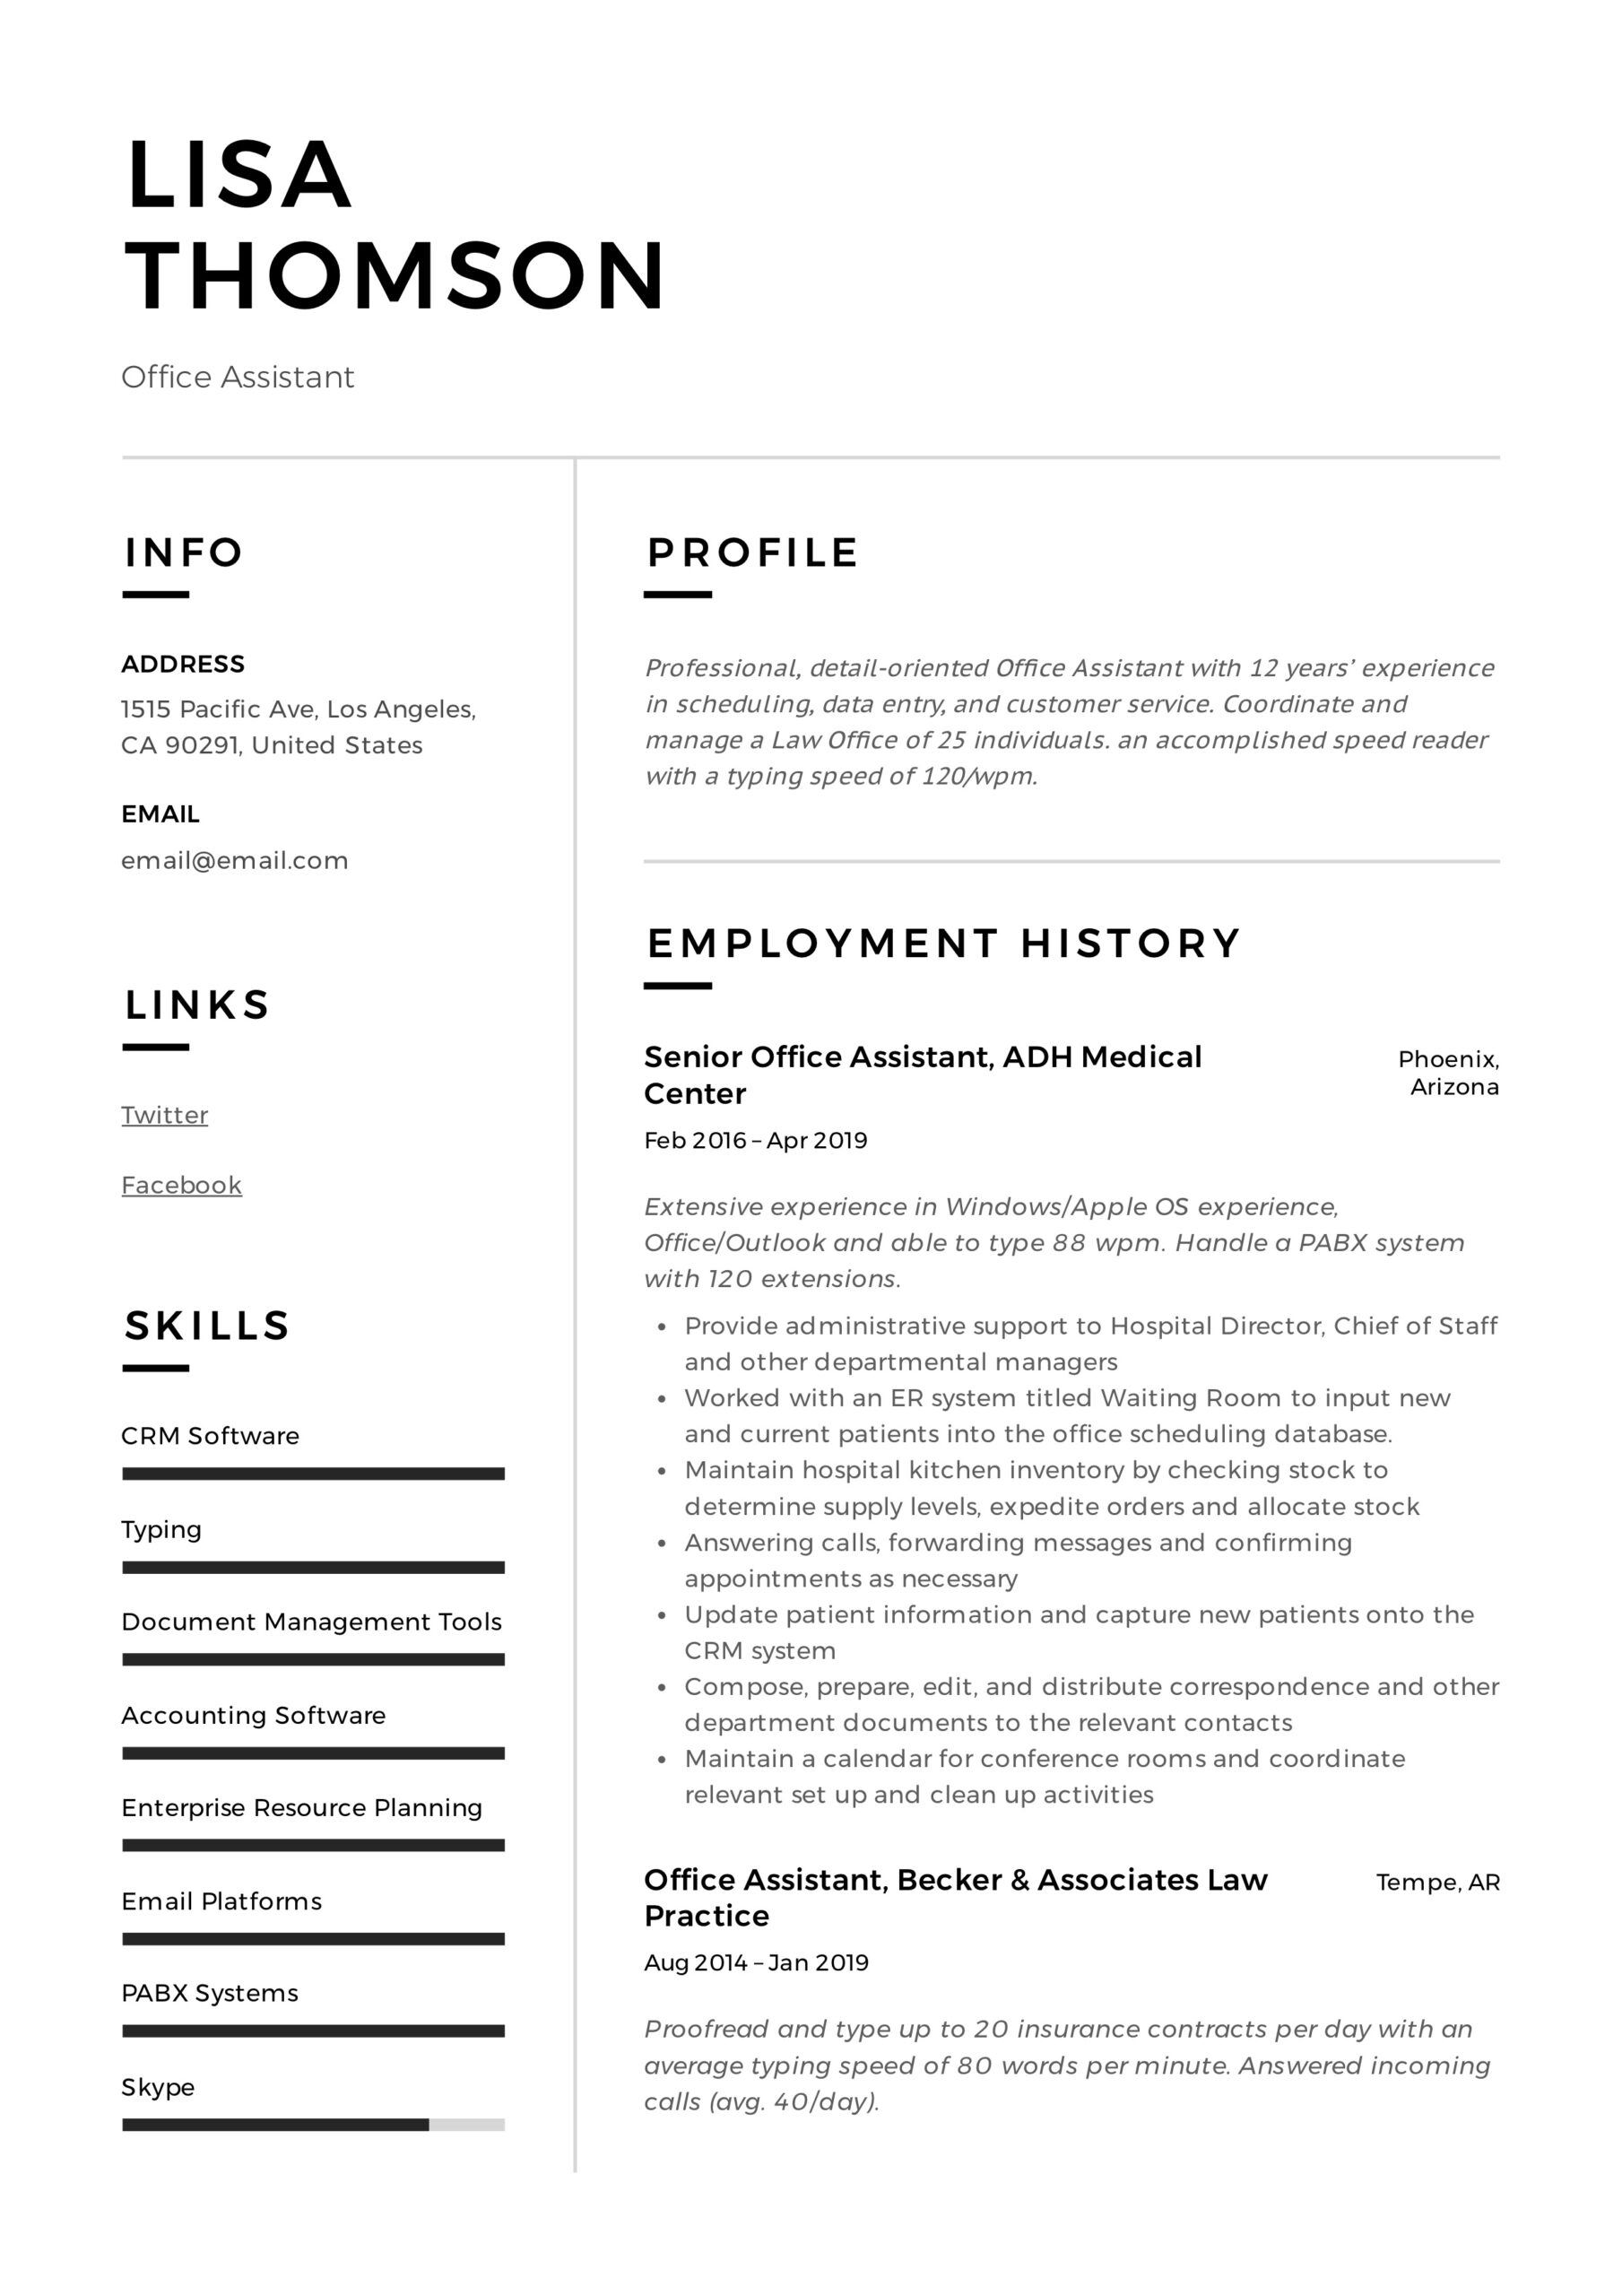 office assistant resume writing guide templates healthcare administrative lisa thomson Resume Healthcare Administrative Assistant Resume